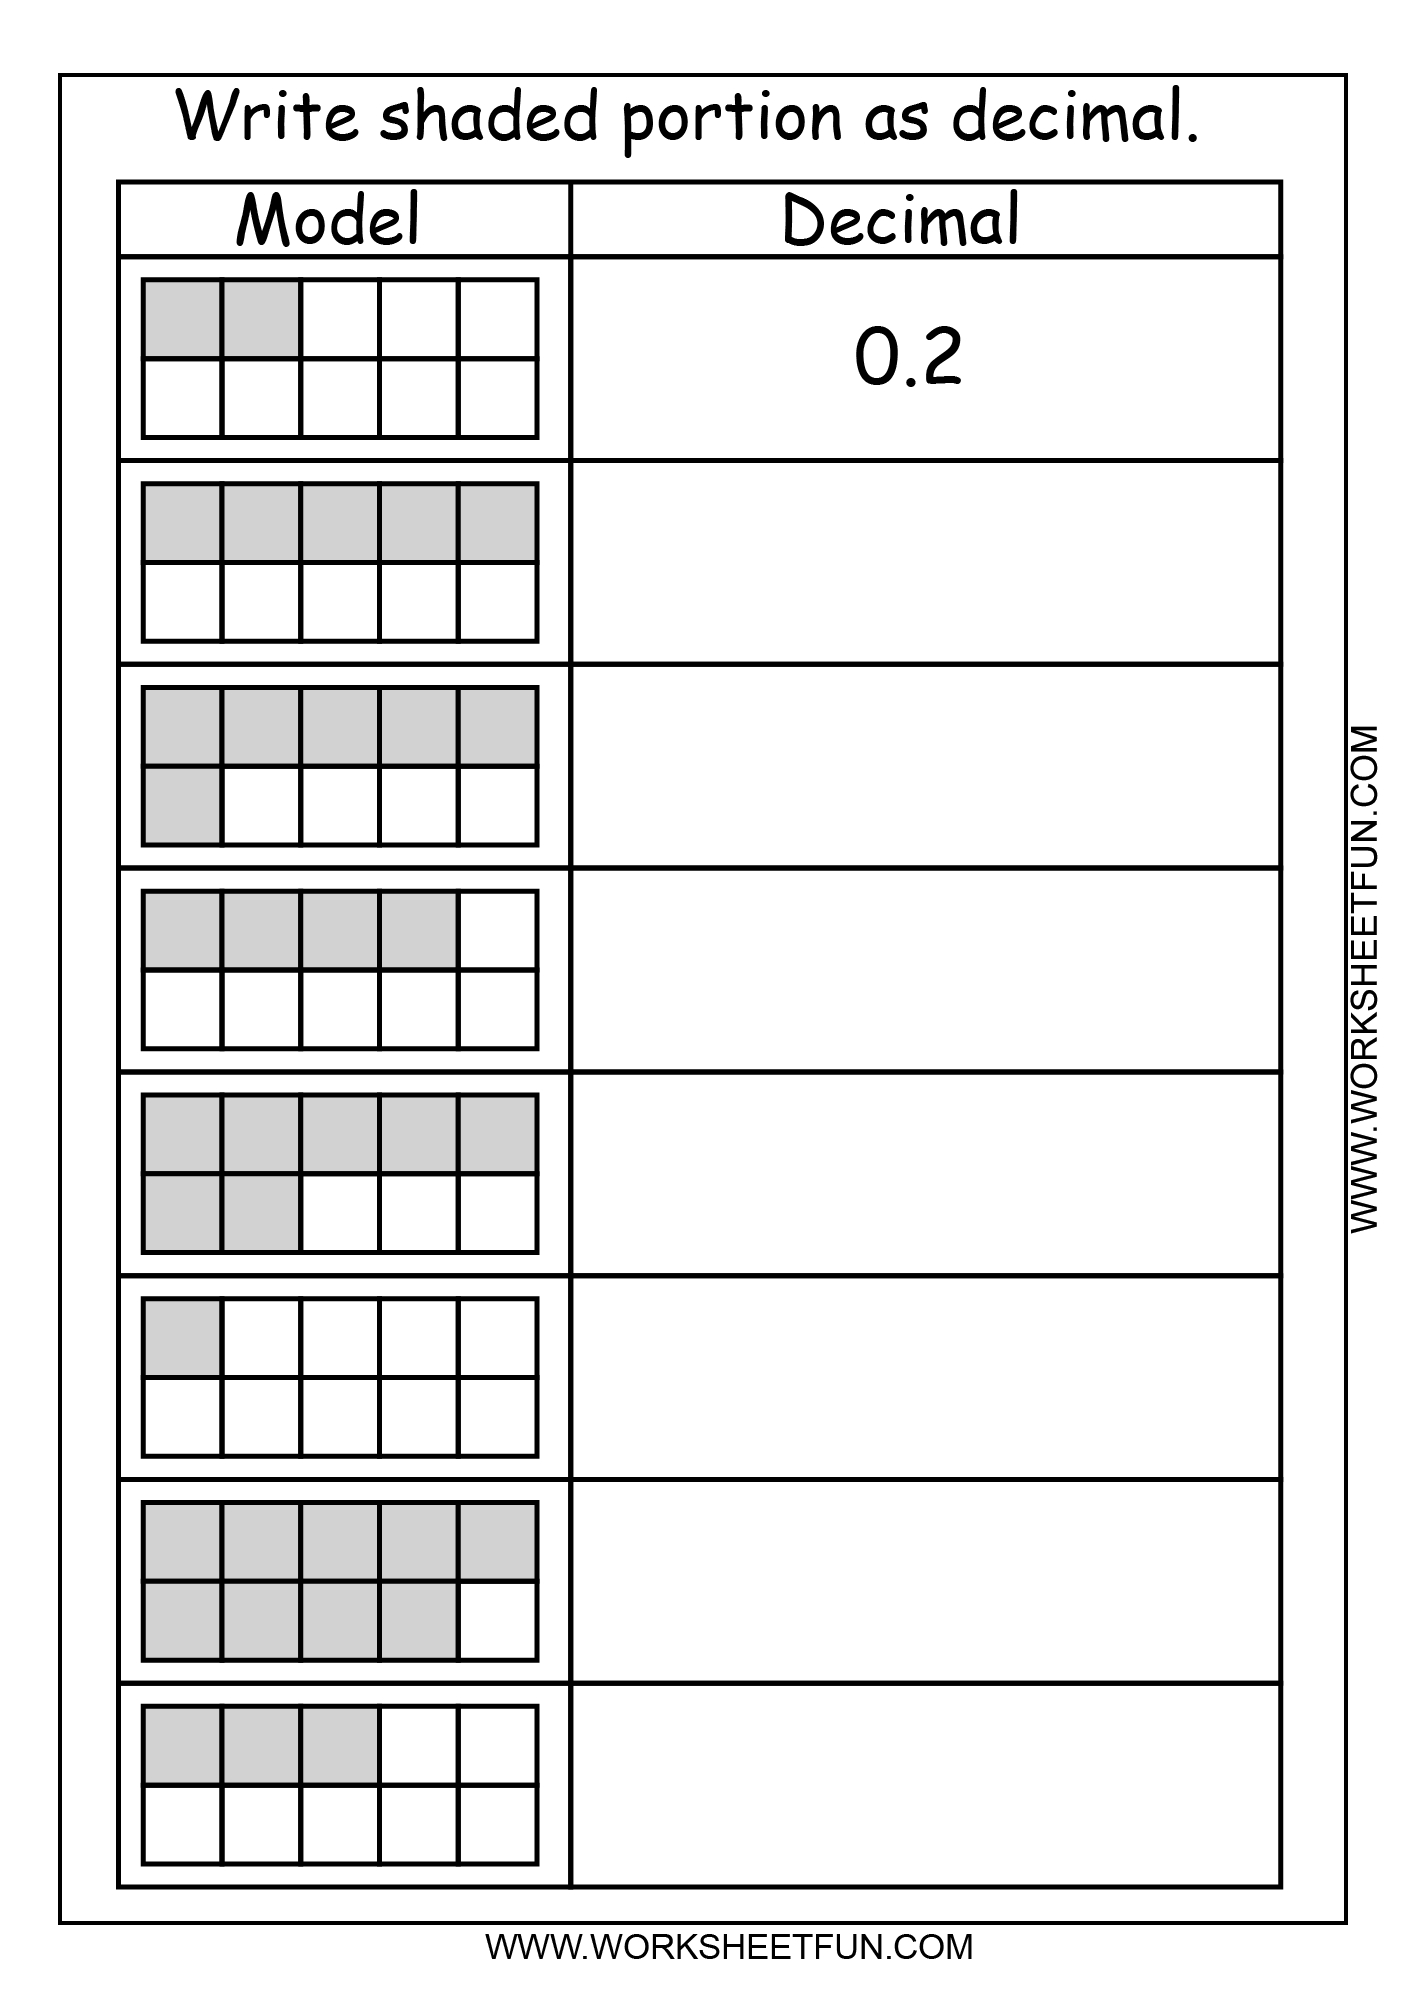 hight resolution of Decimal Worksheets Math Drills   Printable Worksheets and Activities for  Teachers